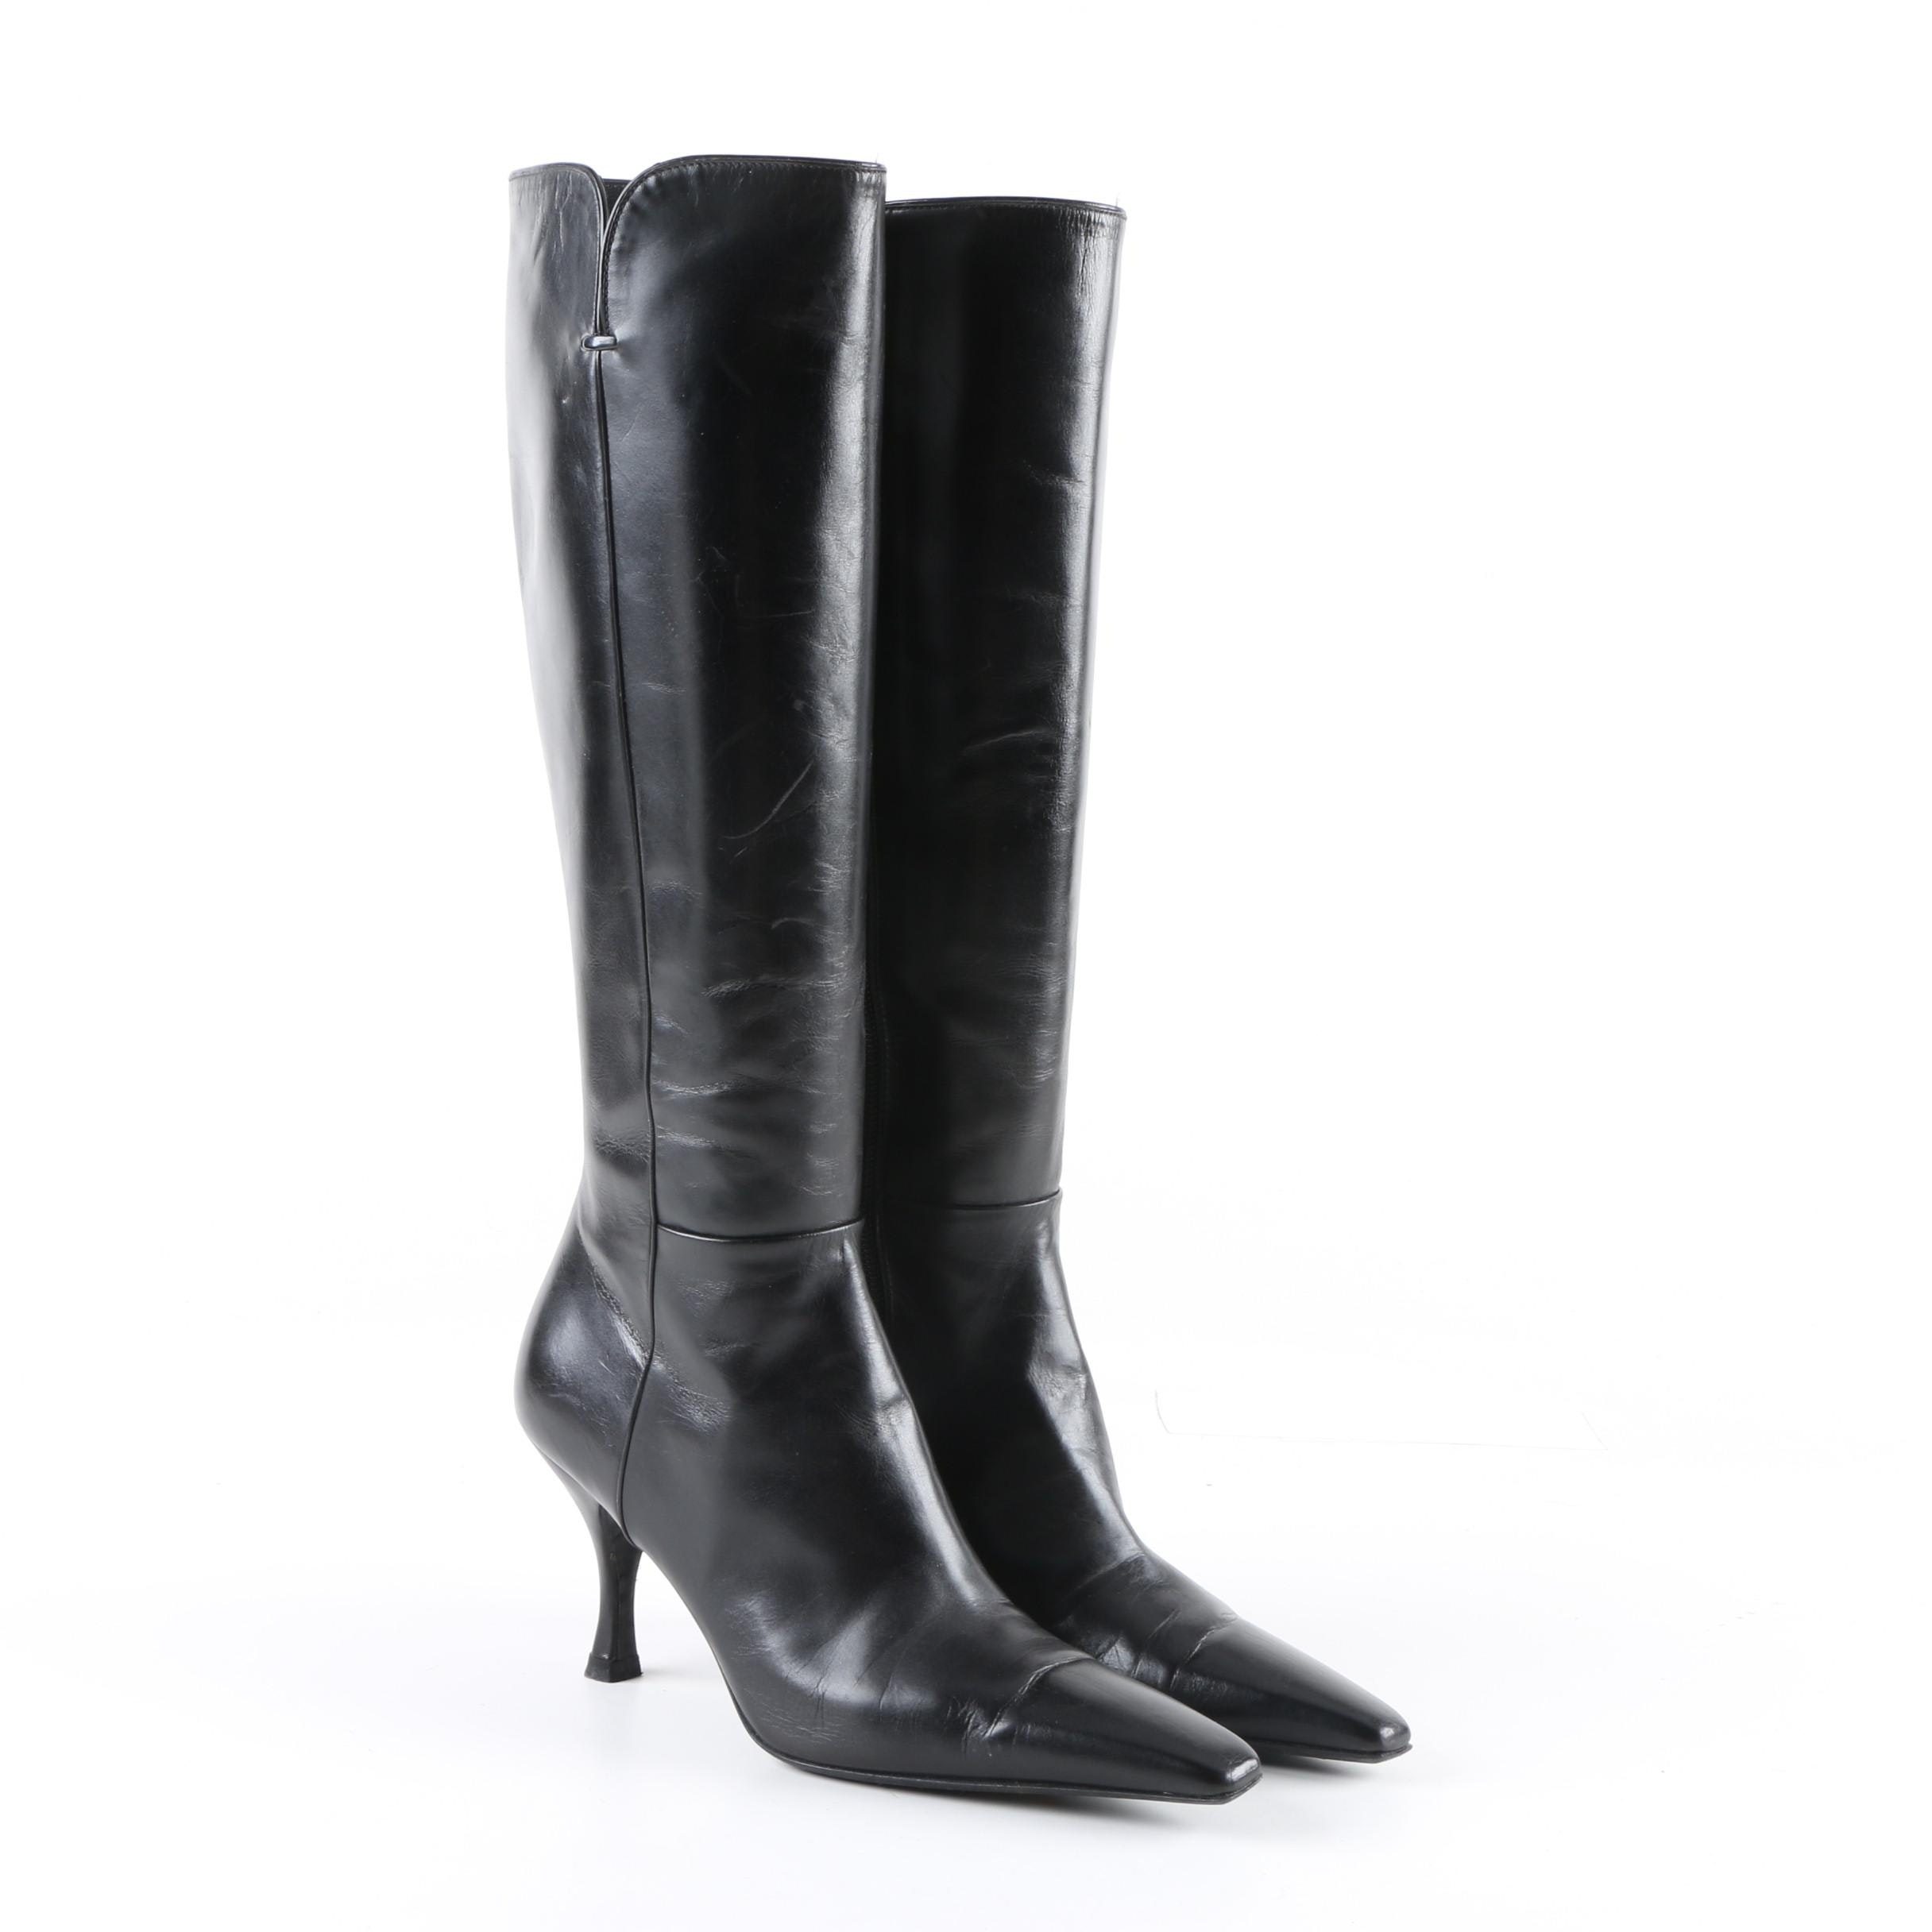 Women's Stuart Weitzman Black Leather High-Heeled Boots